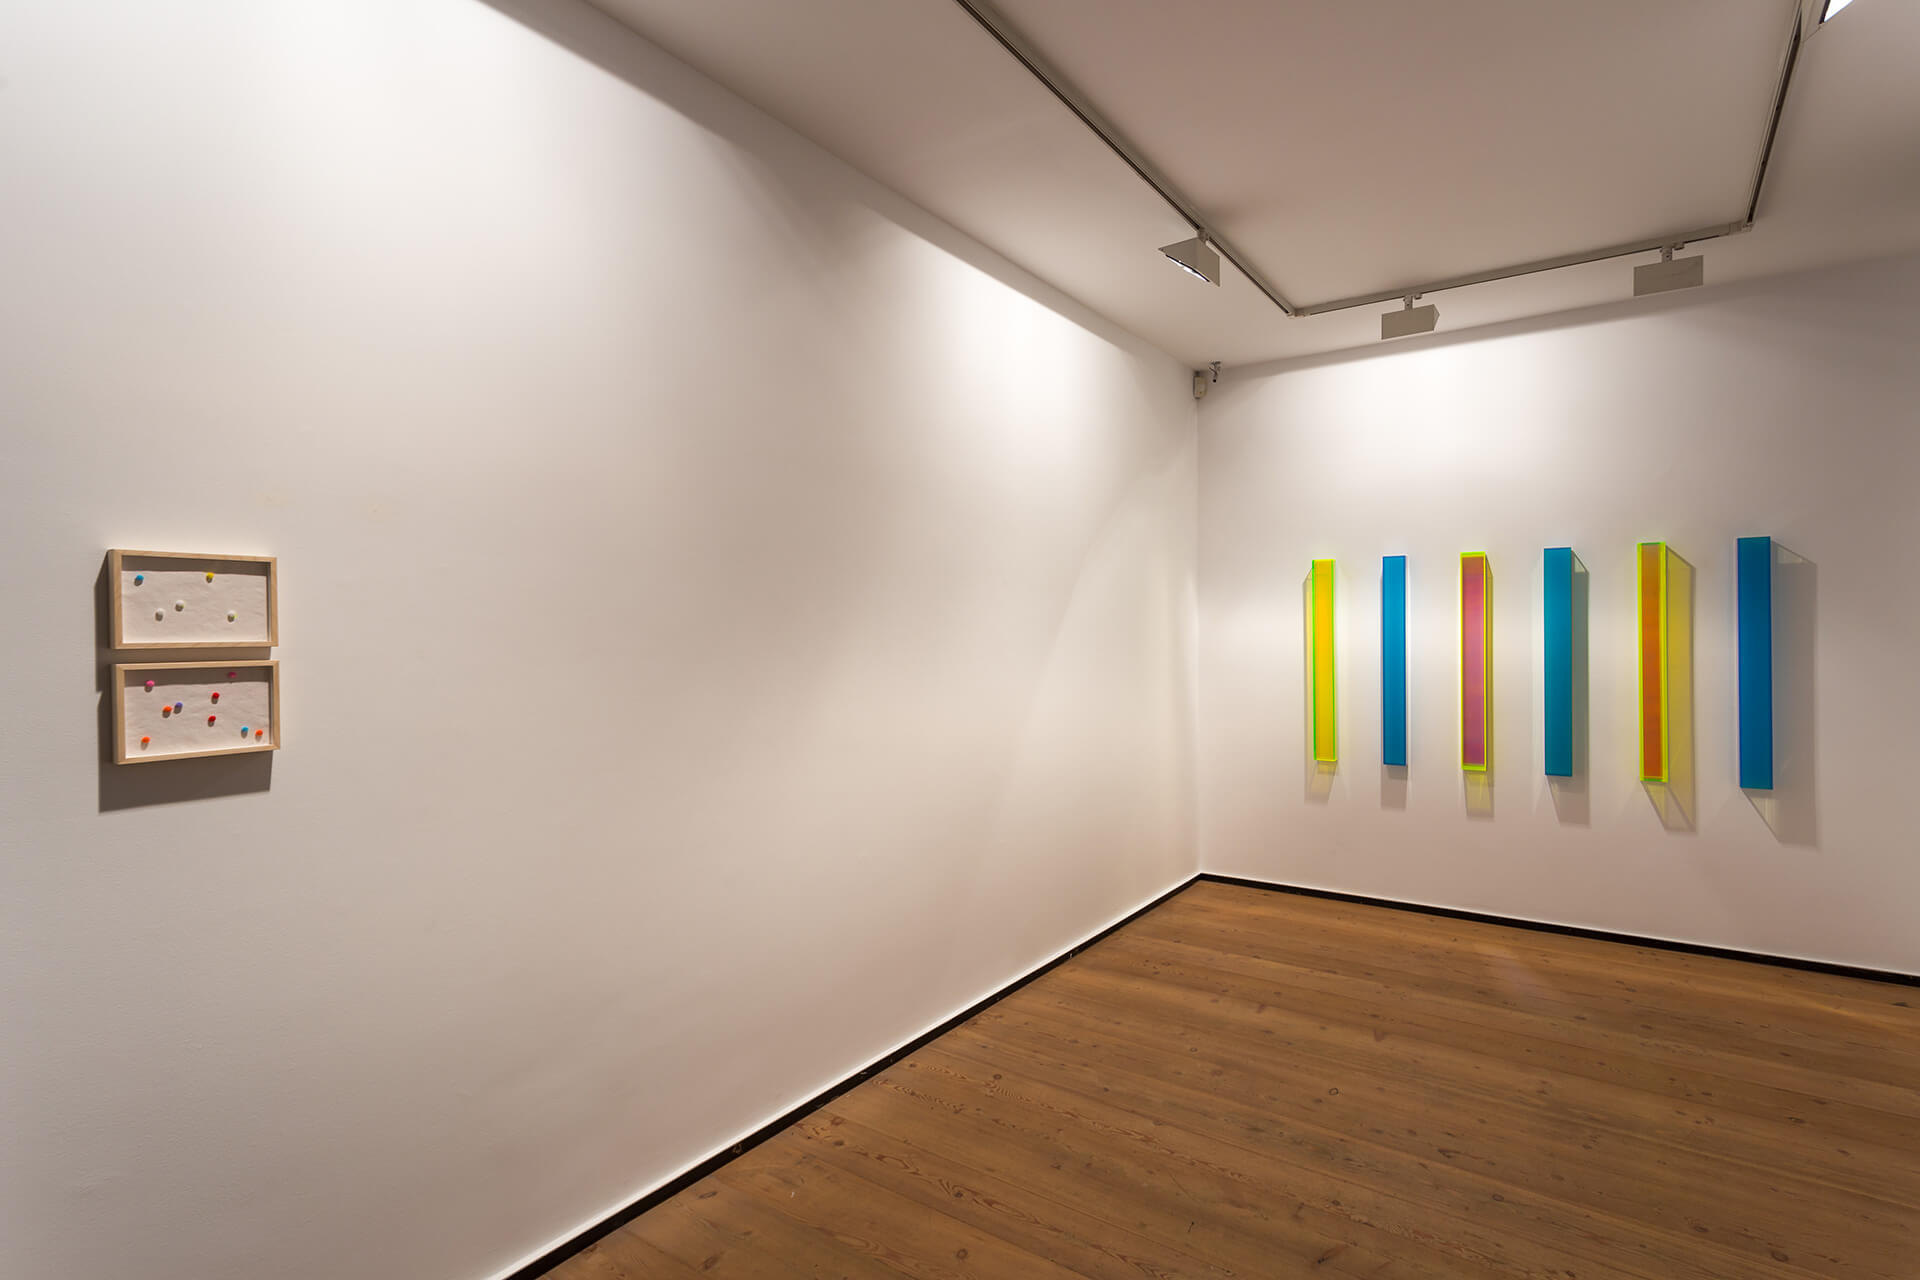 From left to right: 'coloured shadows' (2019) and 'color rainbow and satin brüssel' | Push Borders | Regine Schumann | STIRworld